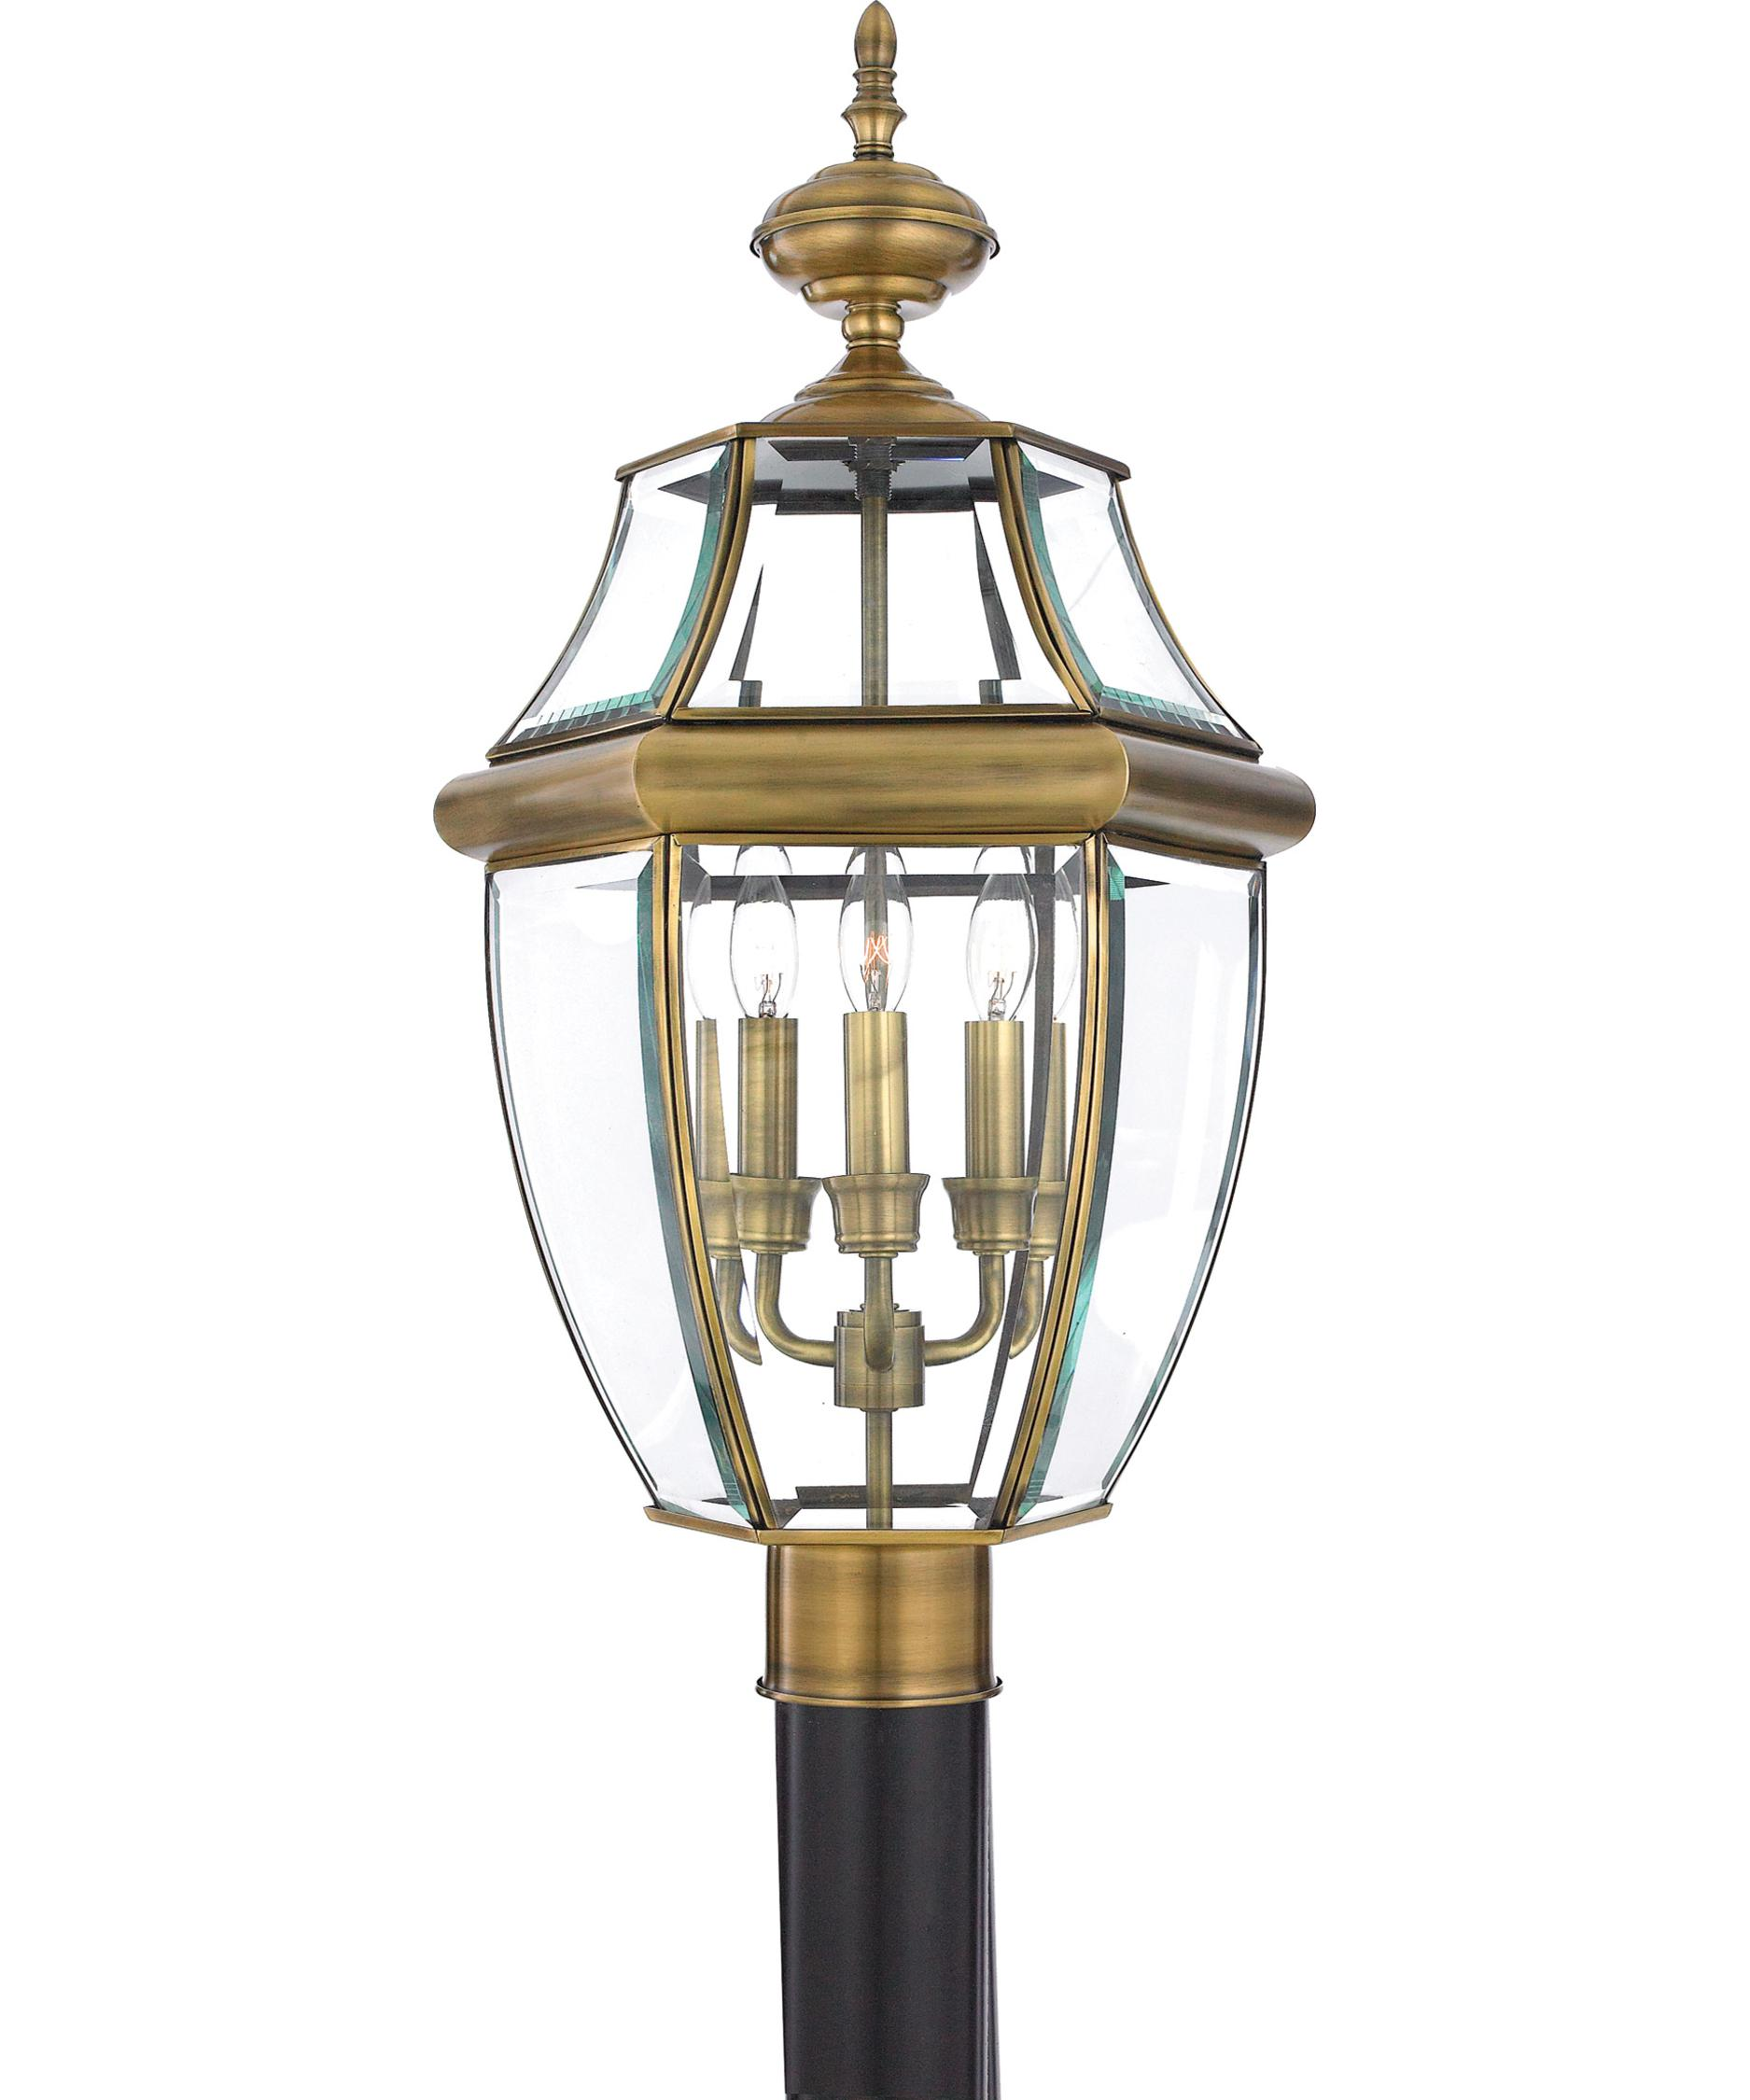 Modern Outdoor Lamp Post - Quoizel ny9043 newbury 12 inch wide 3 light outdoor post lamp capitol lighting 1 800lighting com